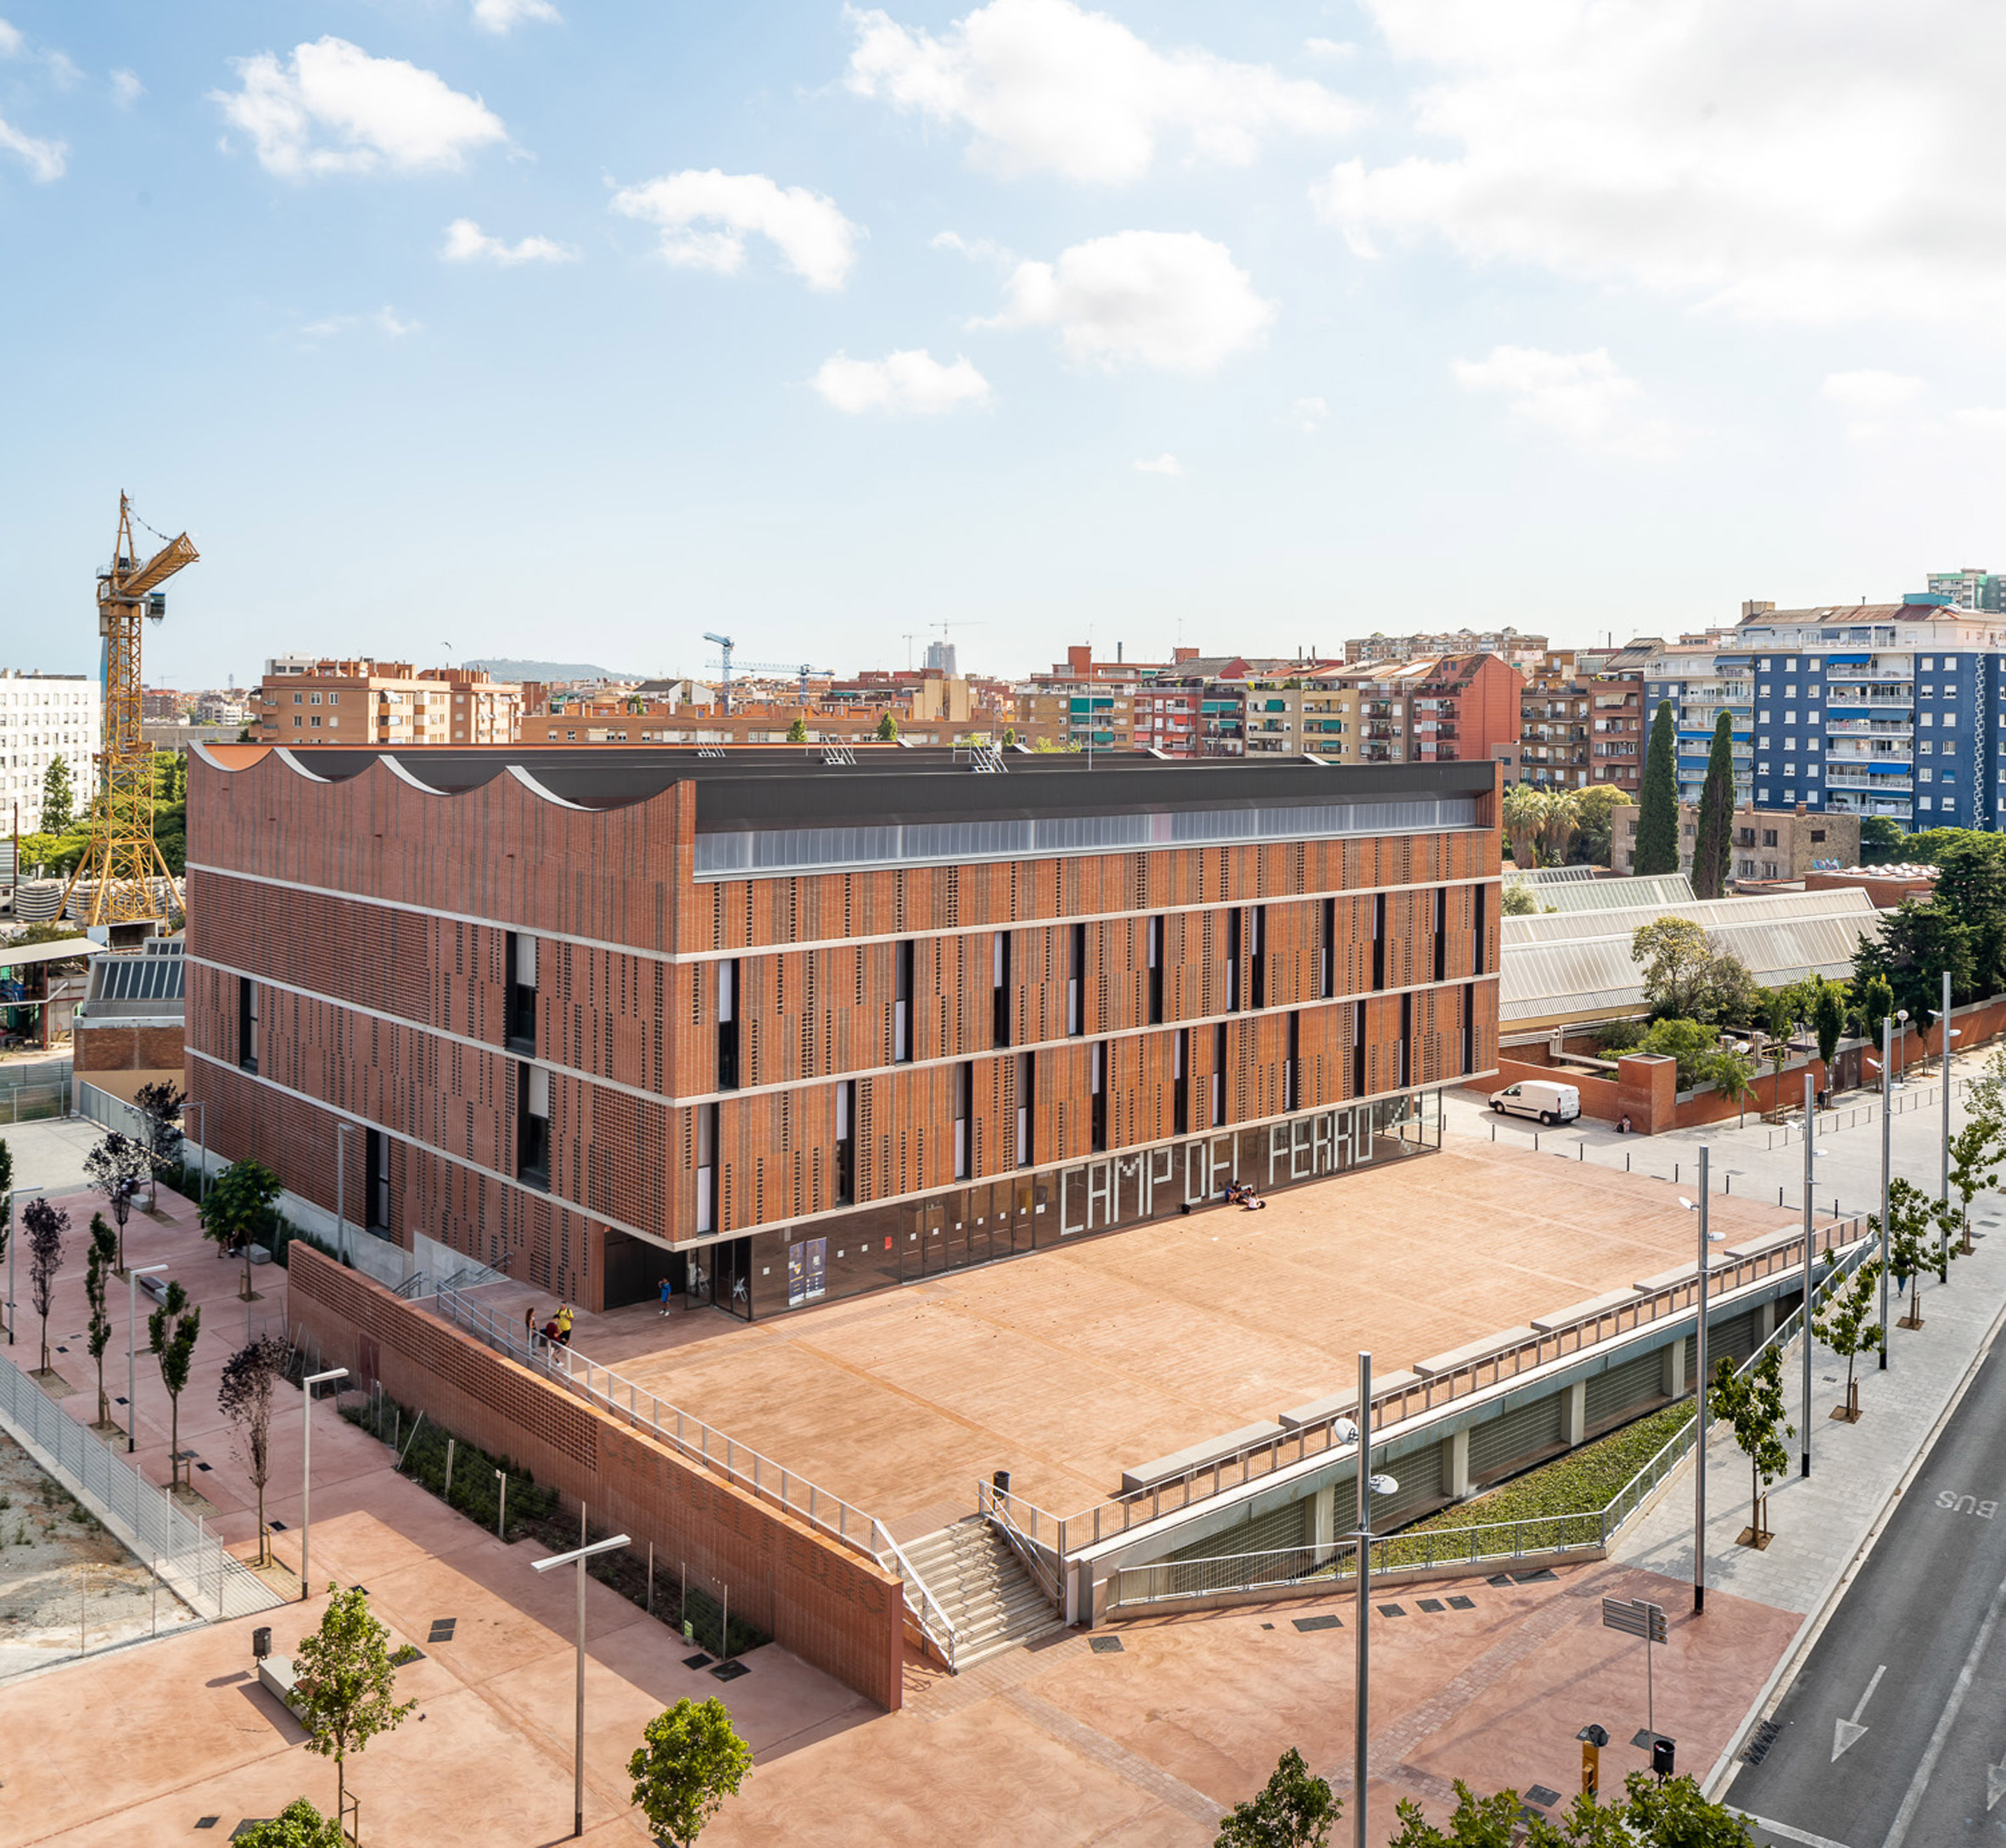 Aerial view of Camp del Ferro sports centre in Barcelona